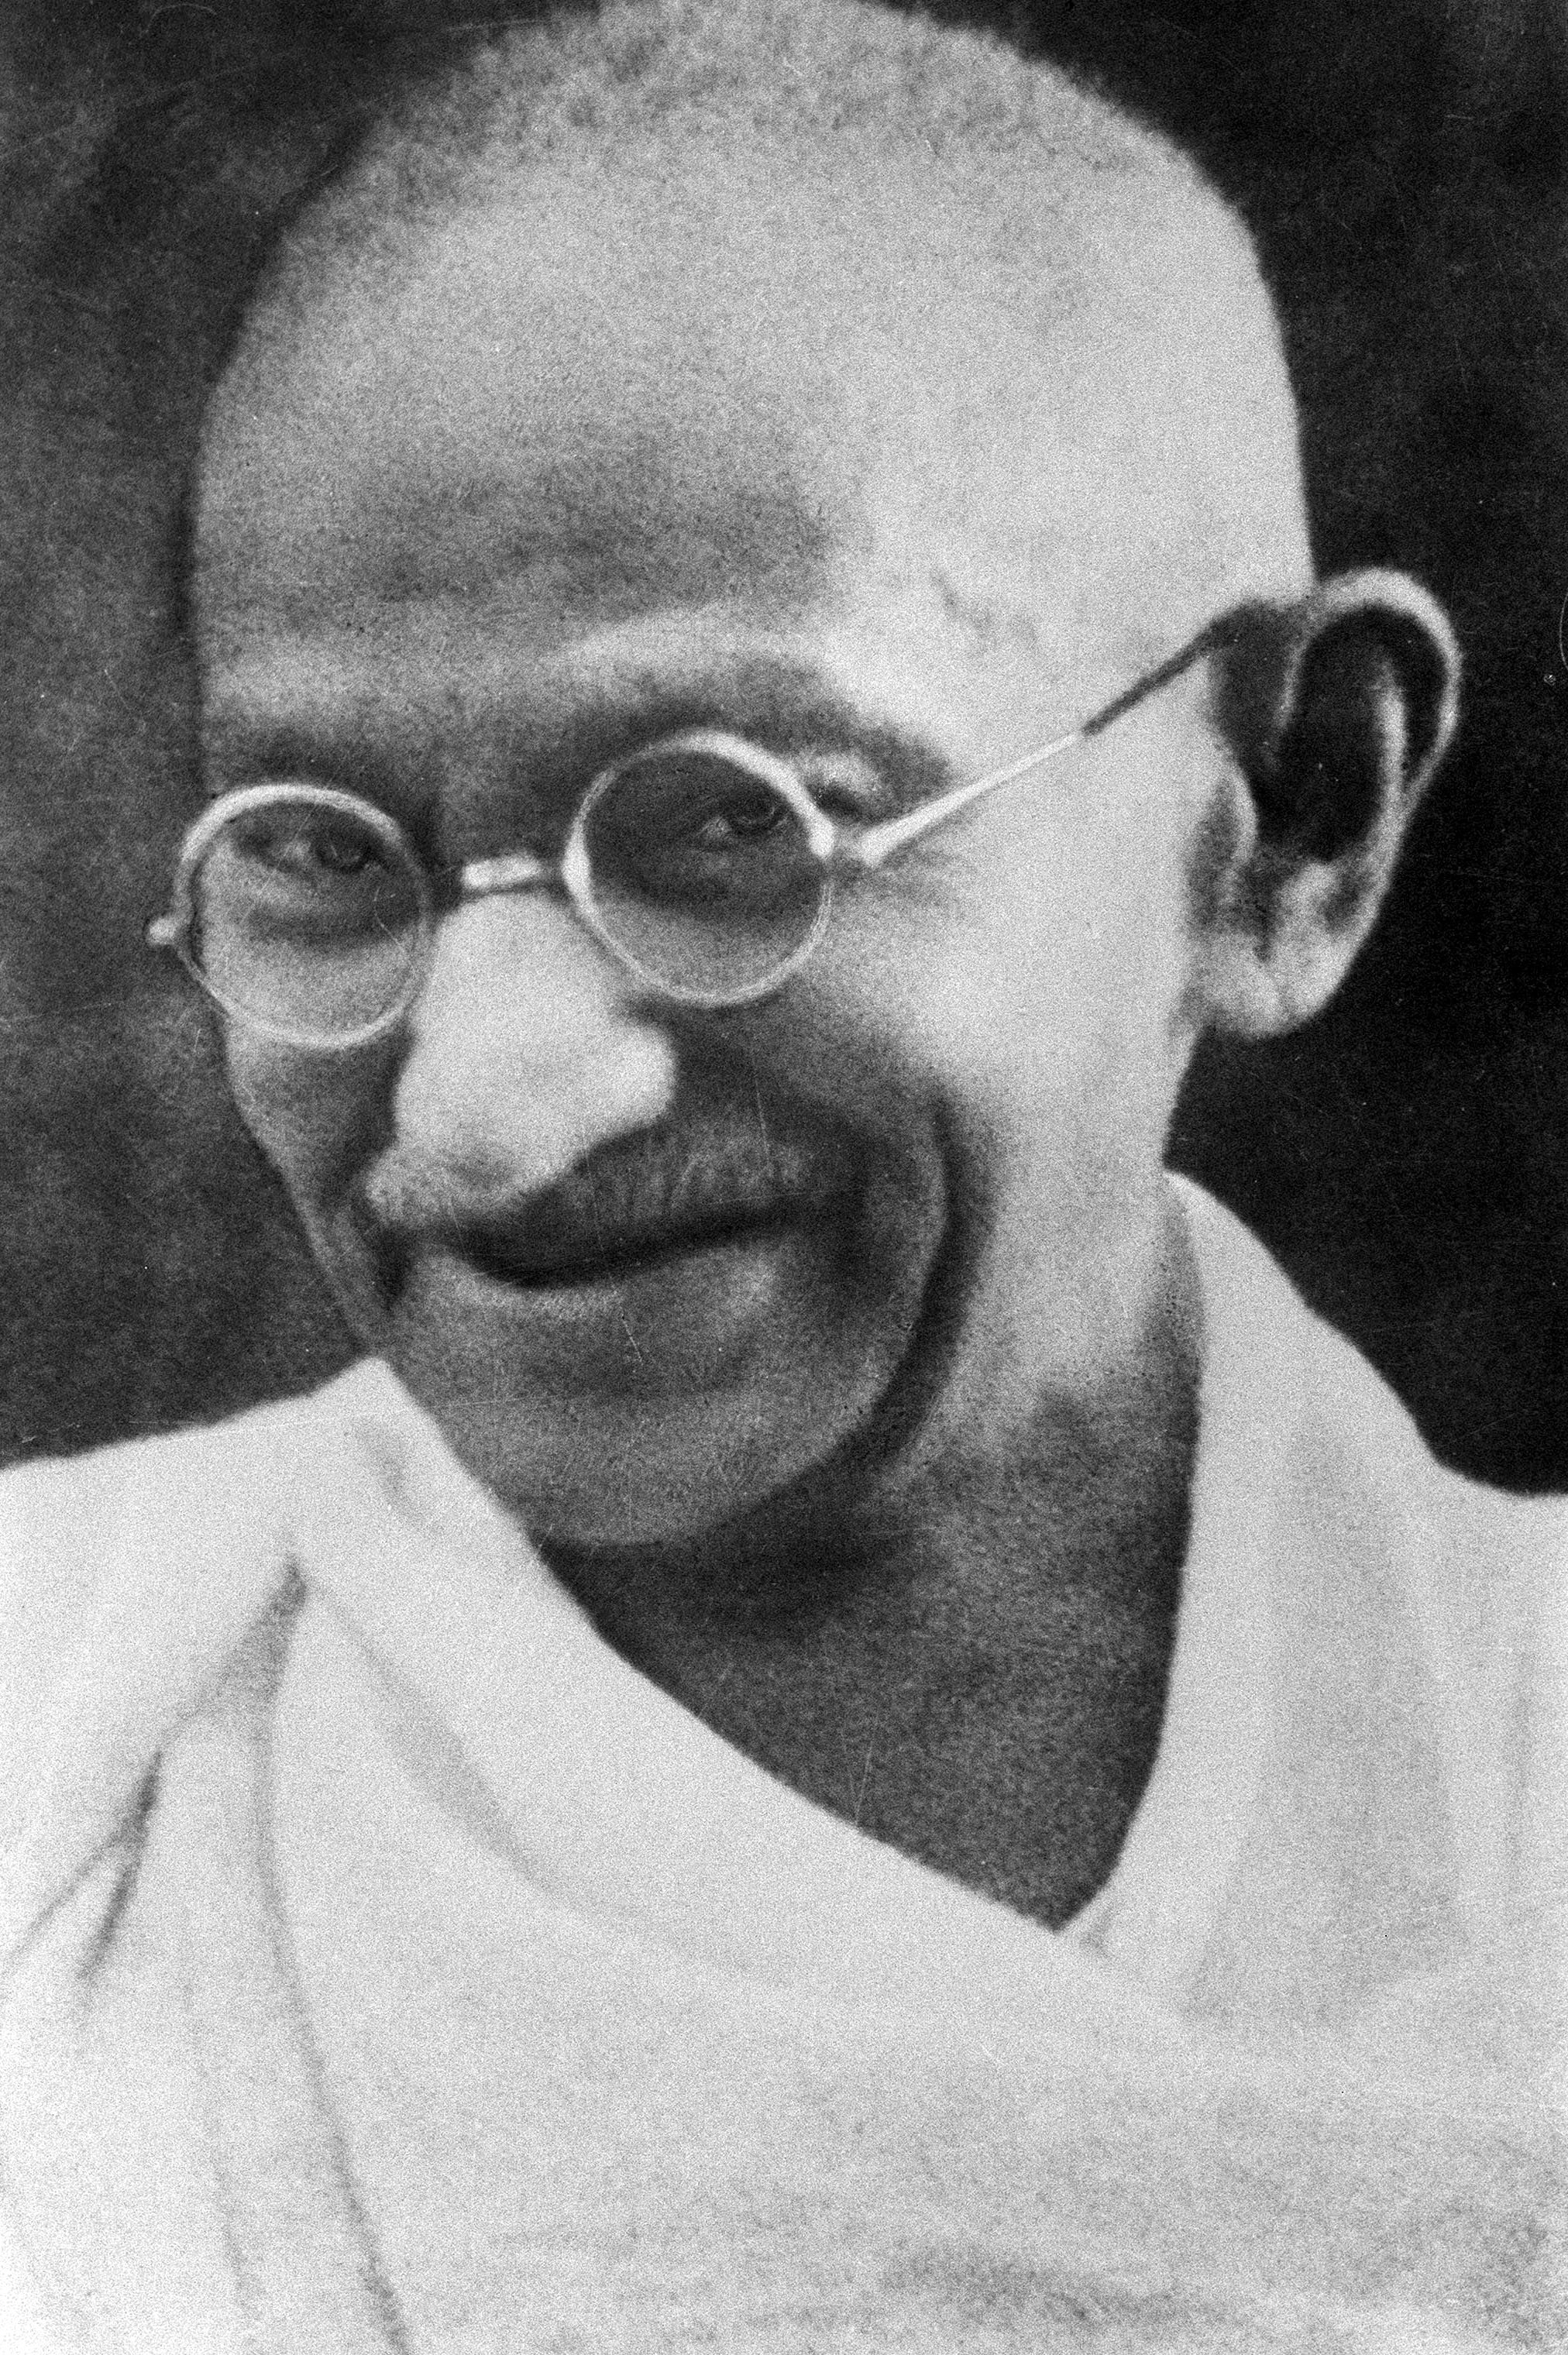 Description Portrait Gandhi.jpg